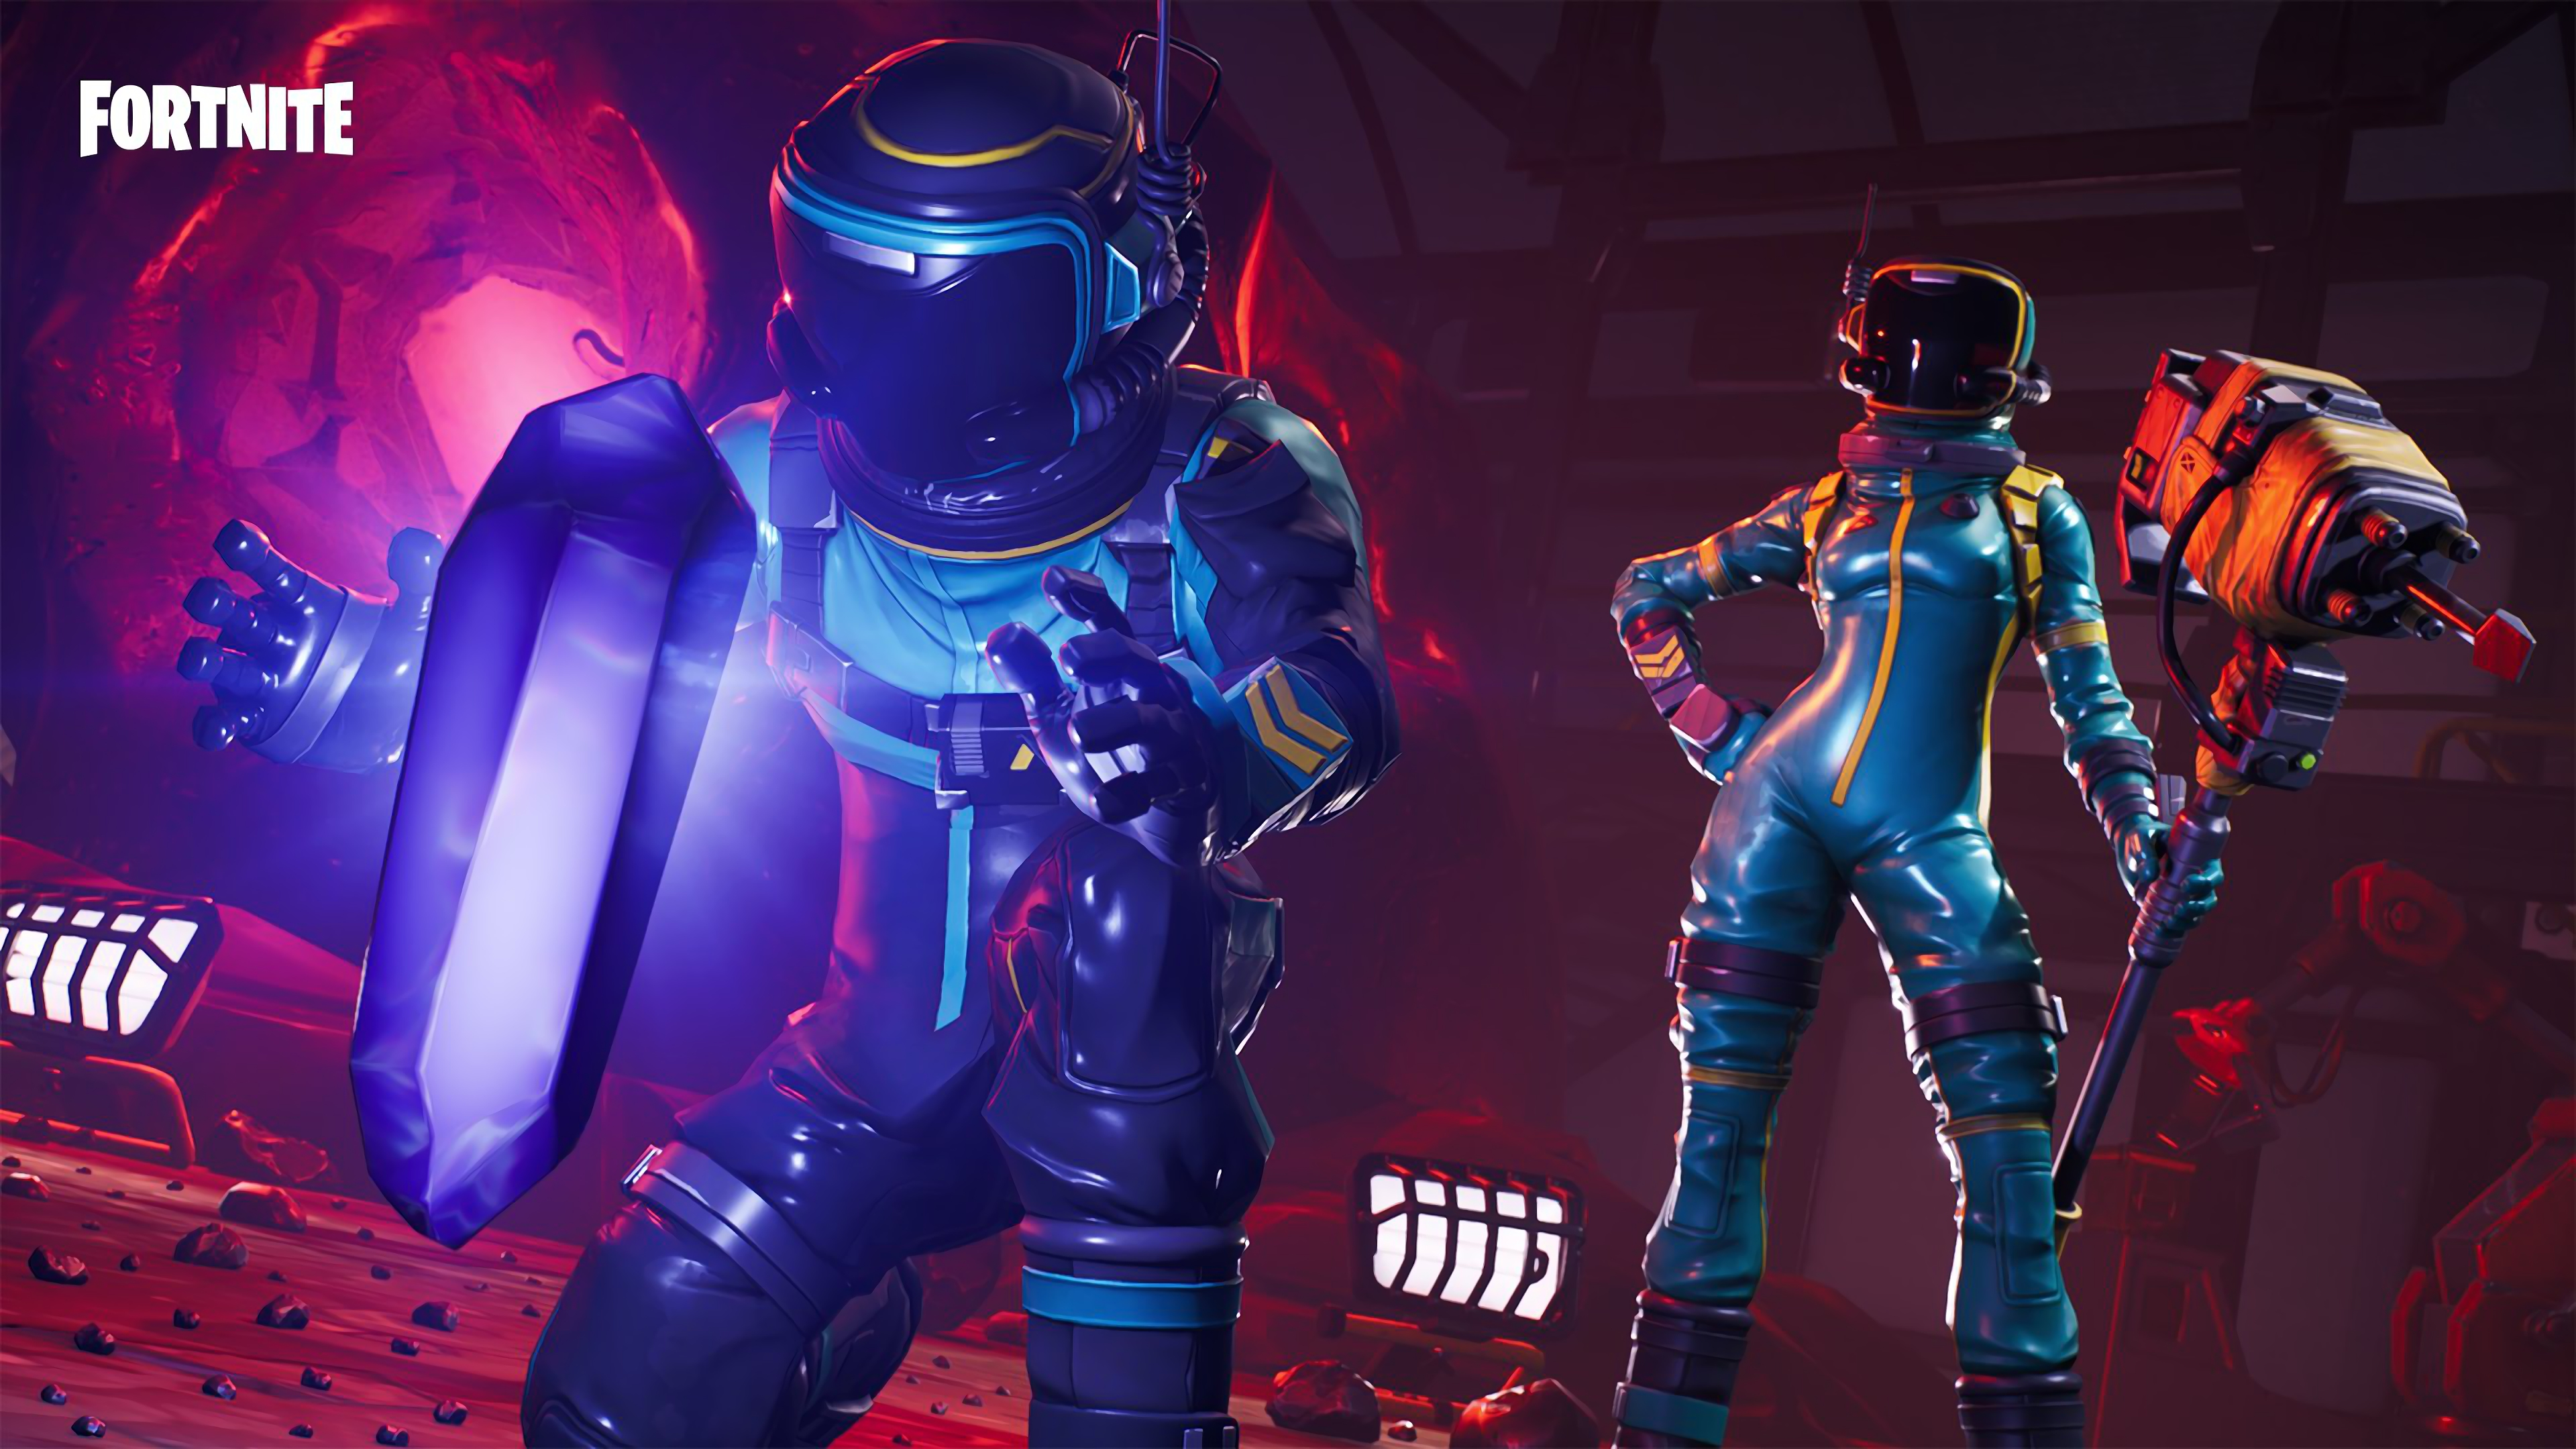 Fortnite background 58